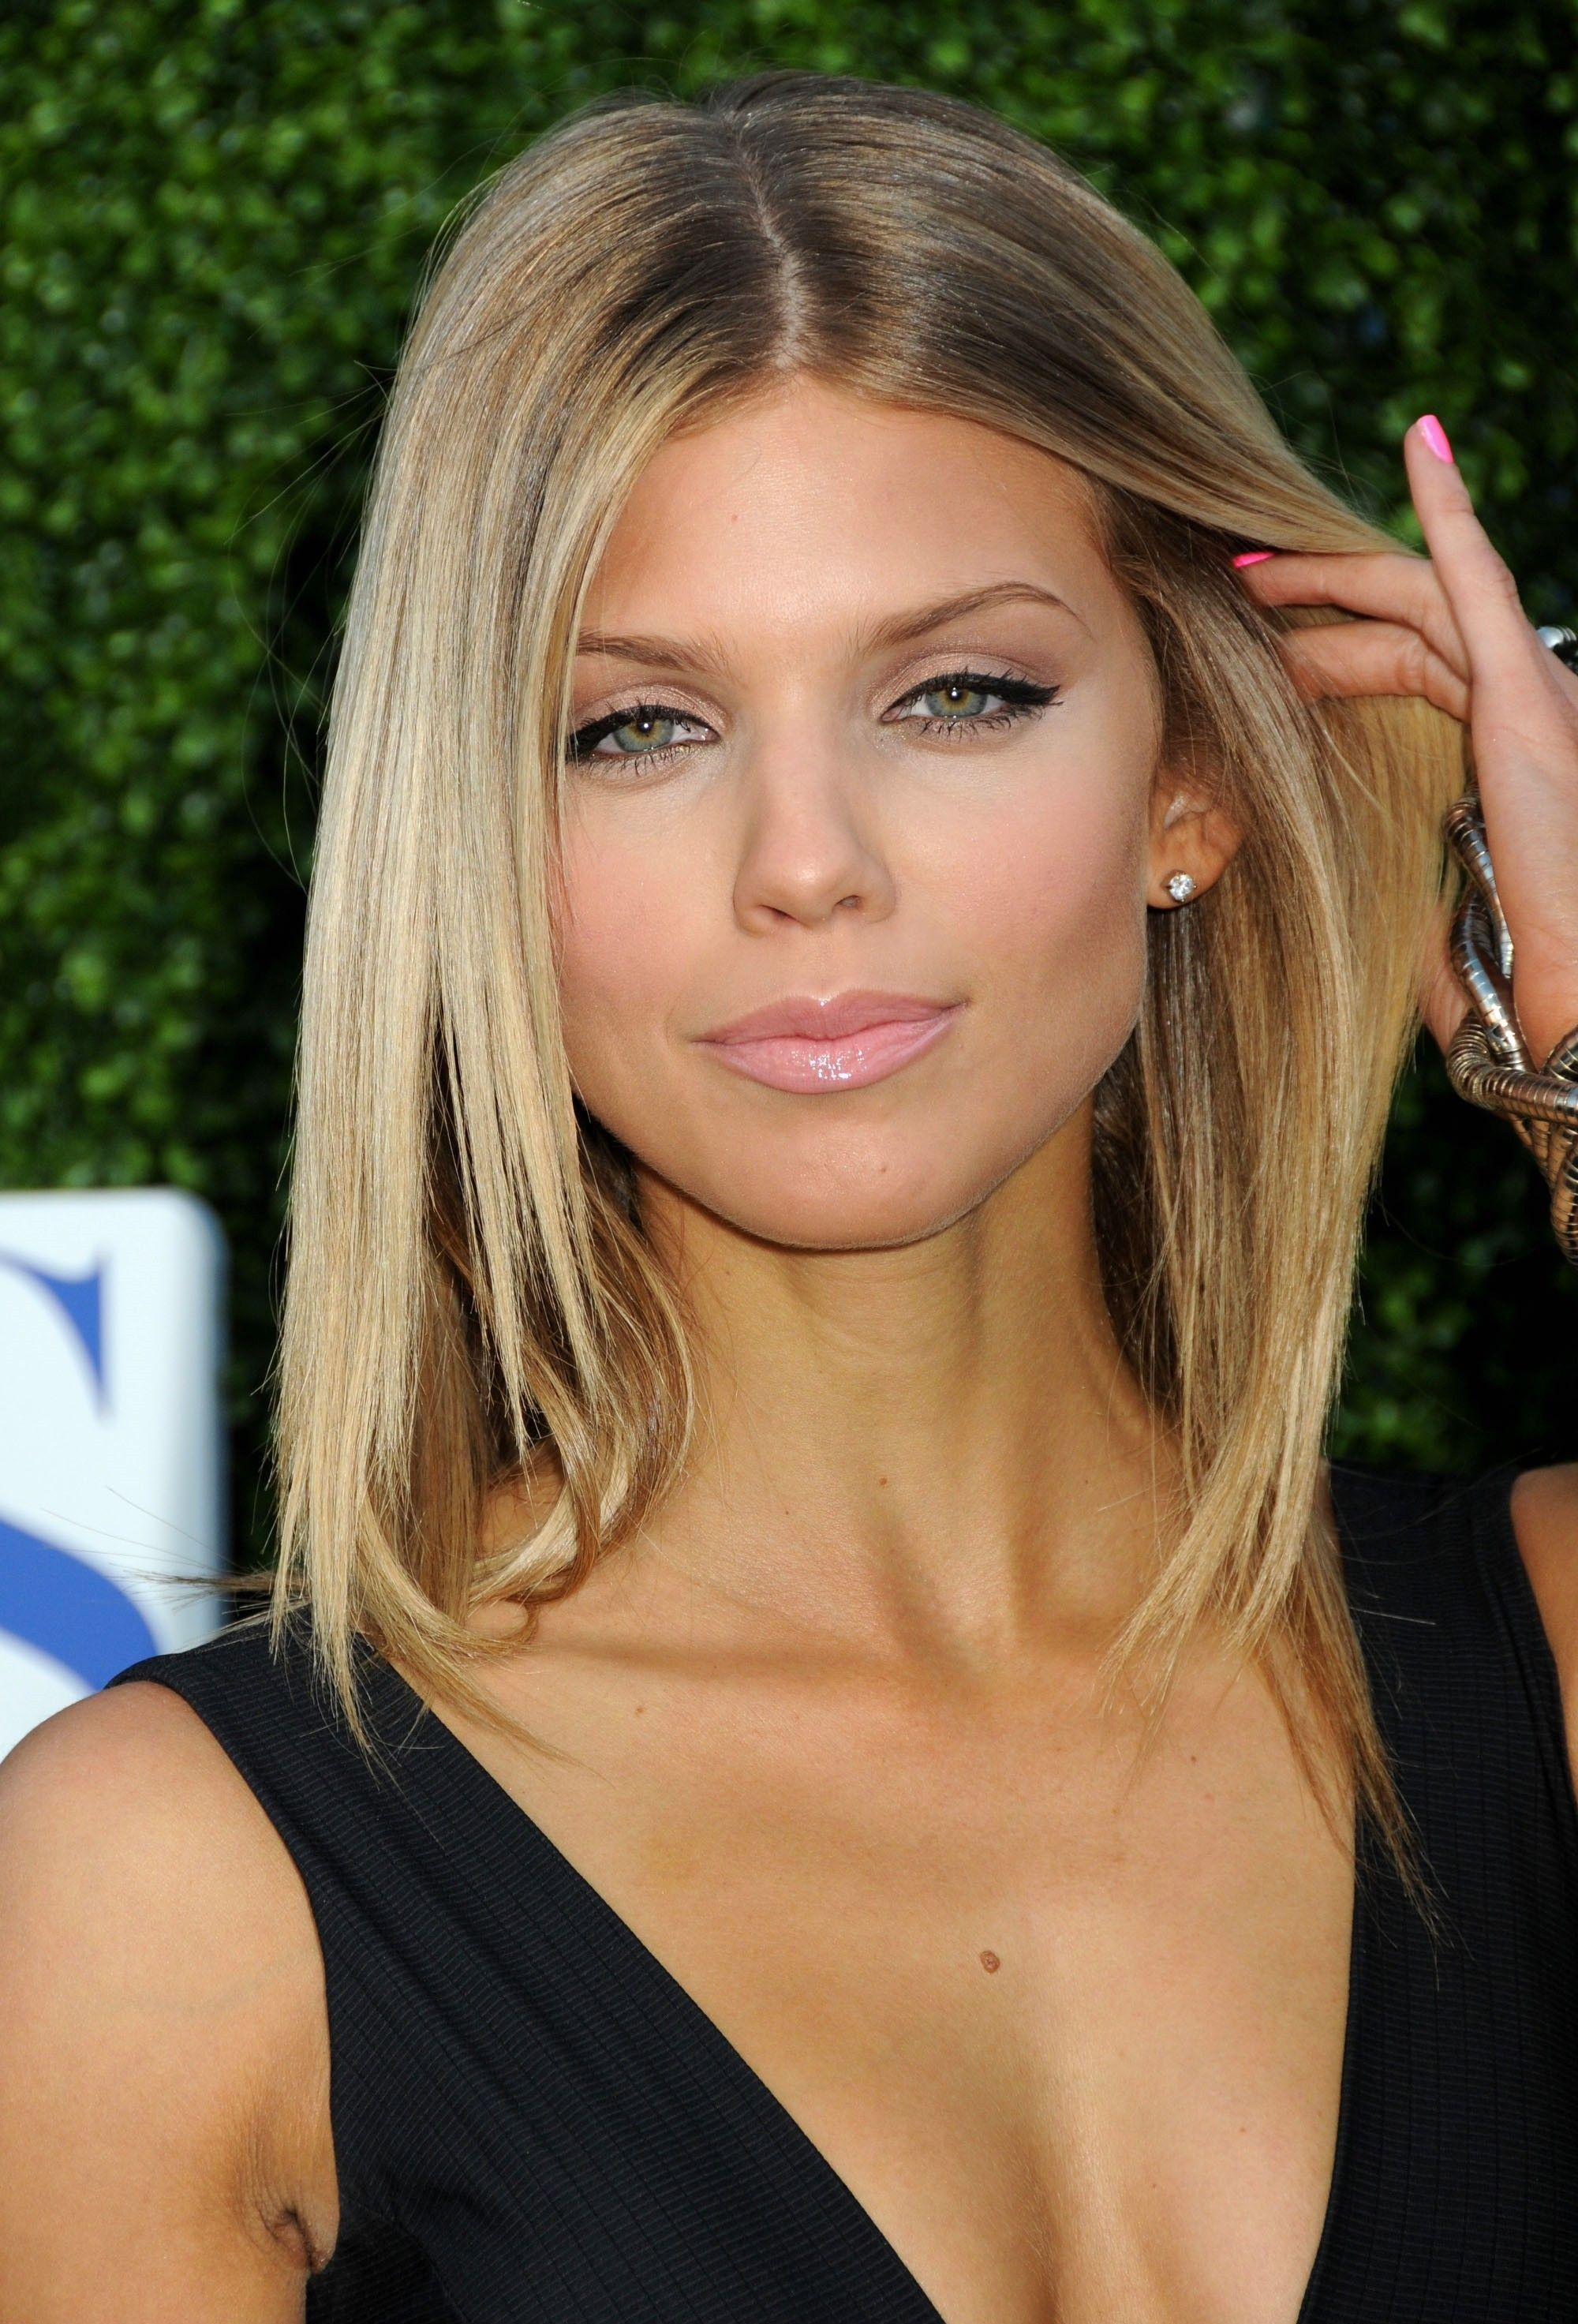 Chic beauty l annalynne mccord l heavy lined lid l glossy lip l